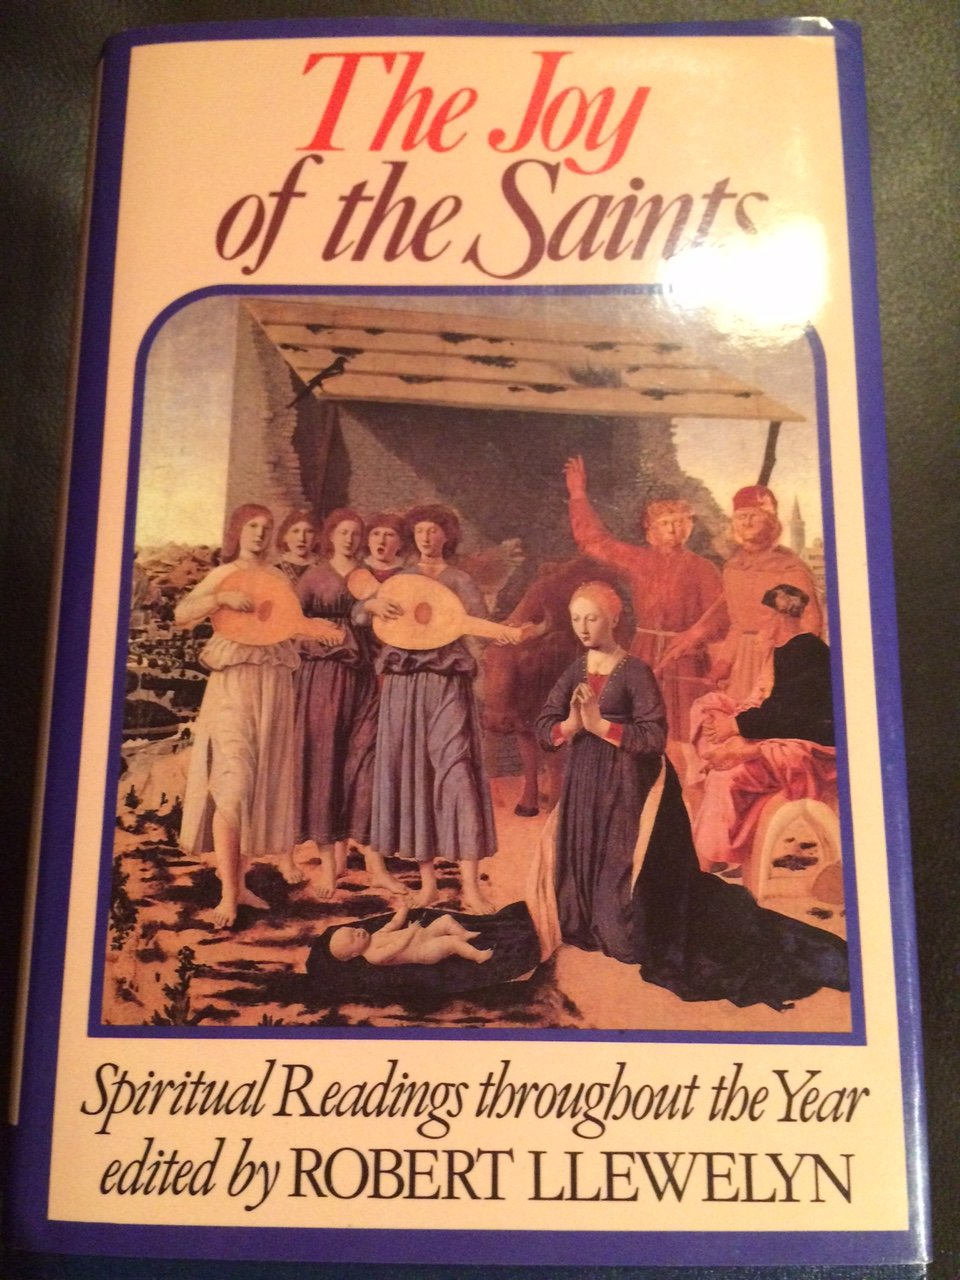 Joy of the Saints: Spiritual Readings Throughout the Year- Dec 15, 1993 by Robert Llewelyn